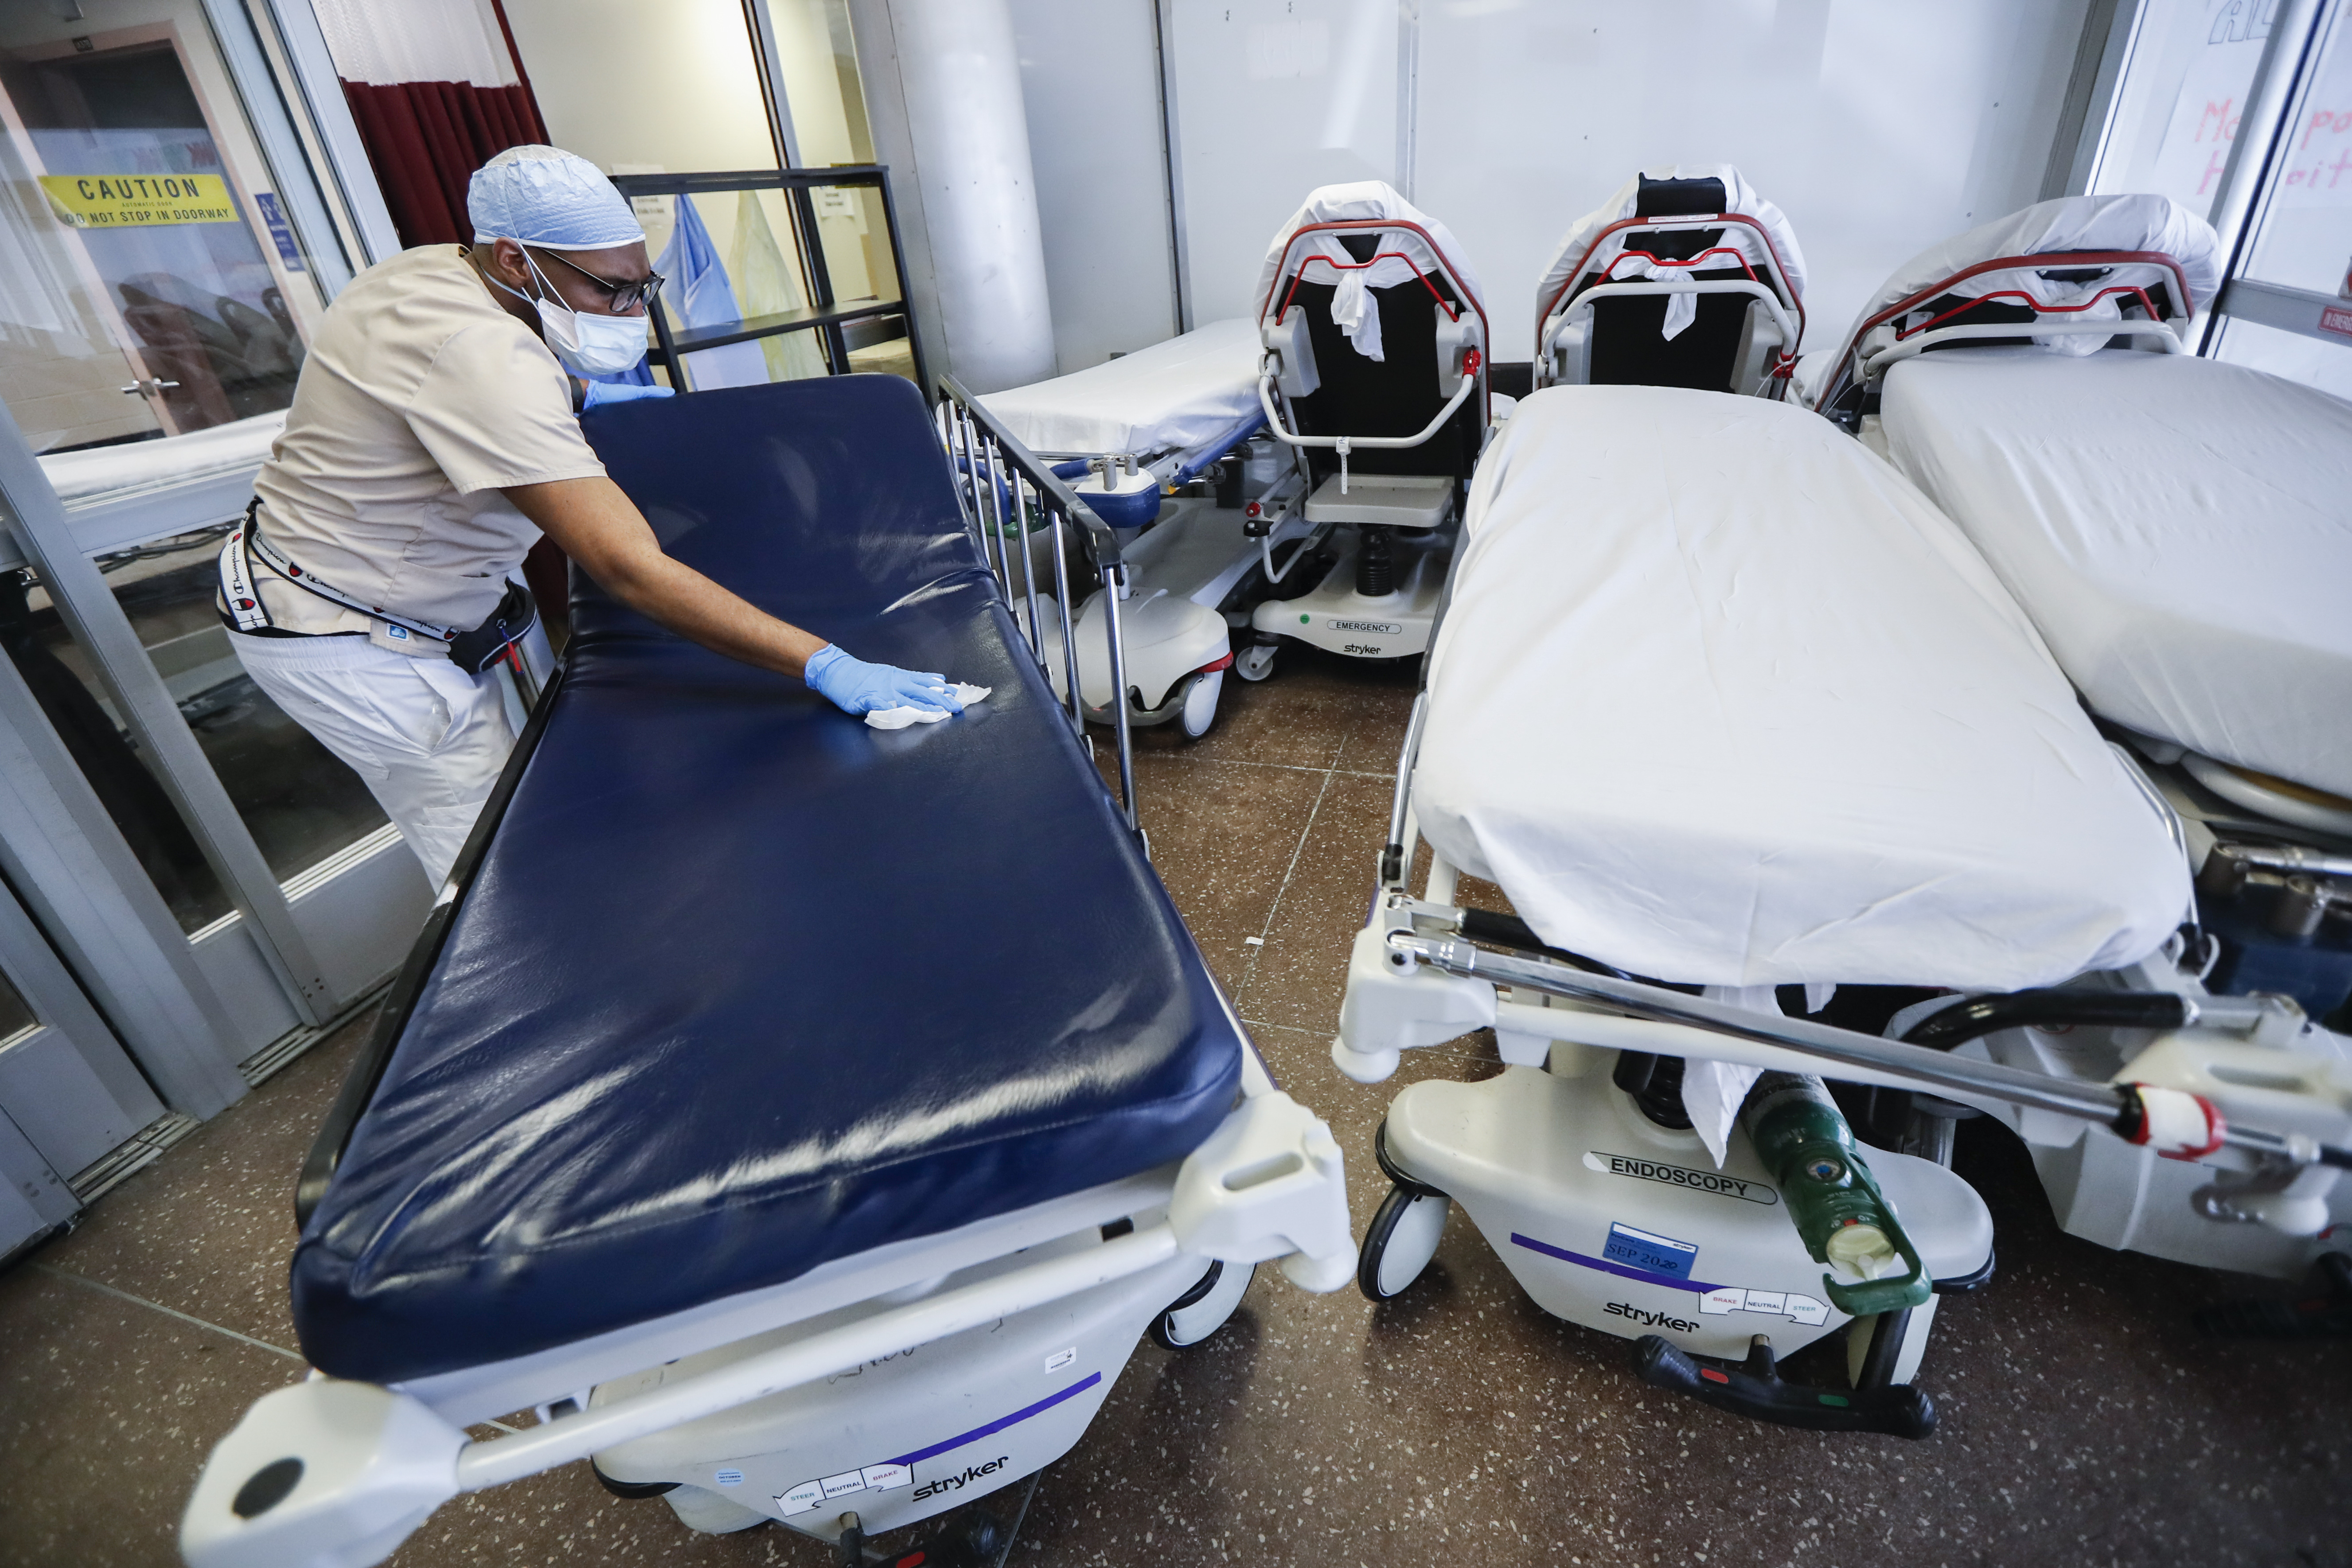 A medical worker wearing personal protective equipment cleans gurneys in the emergency department intake area in New York, on May 27, 2020.